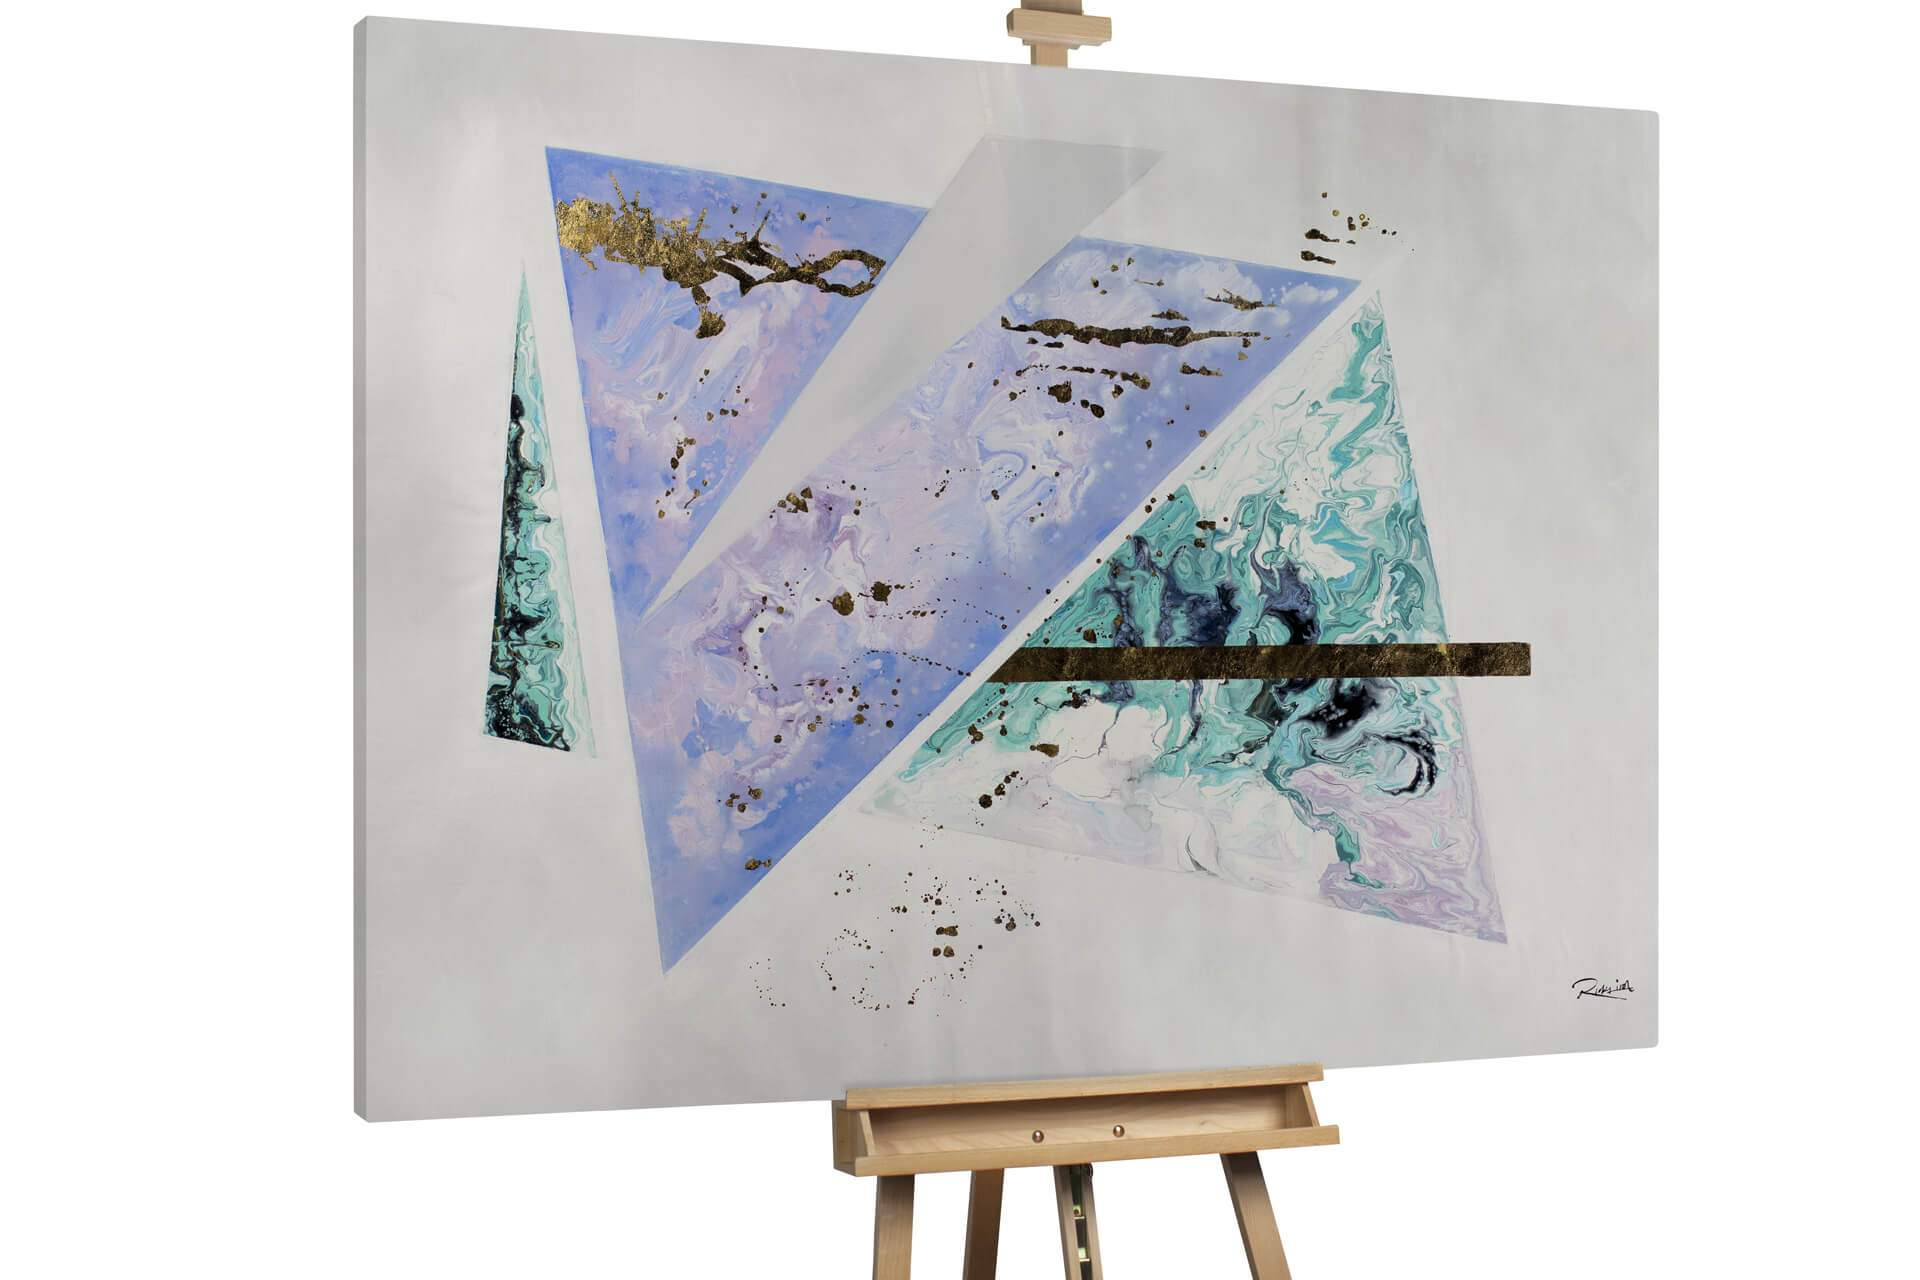 kl shading forms purple turquoise oil paintings oil pictures unique hand painted pieces modern art 0001 01